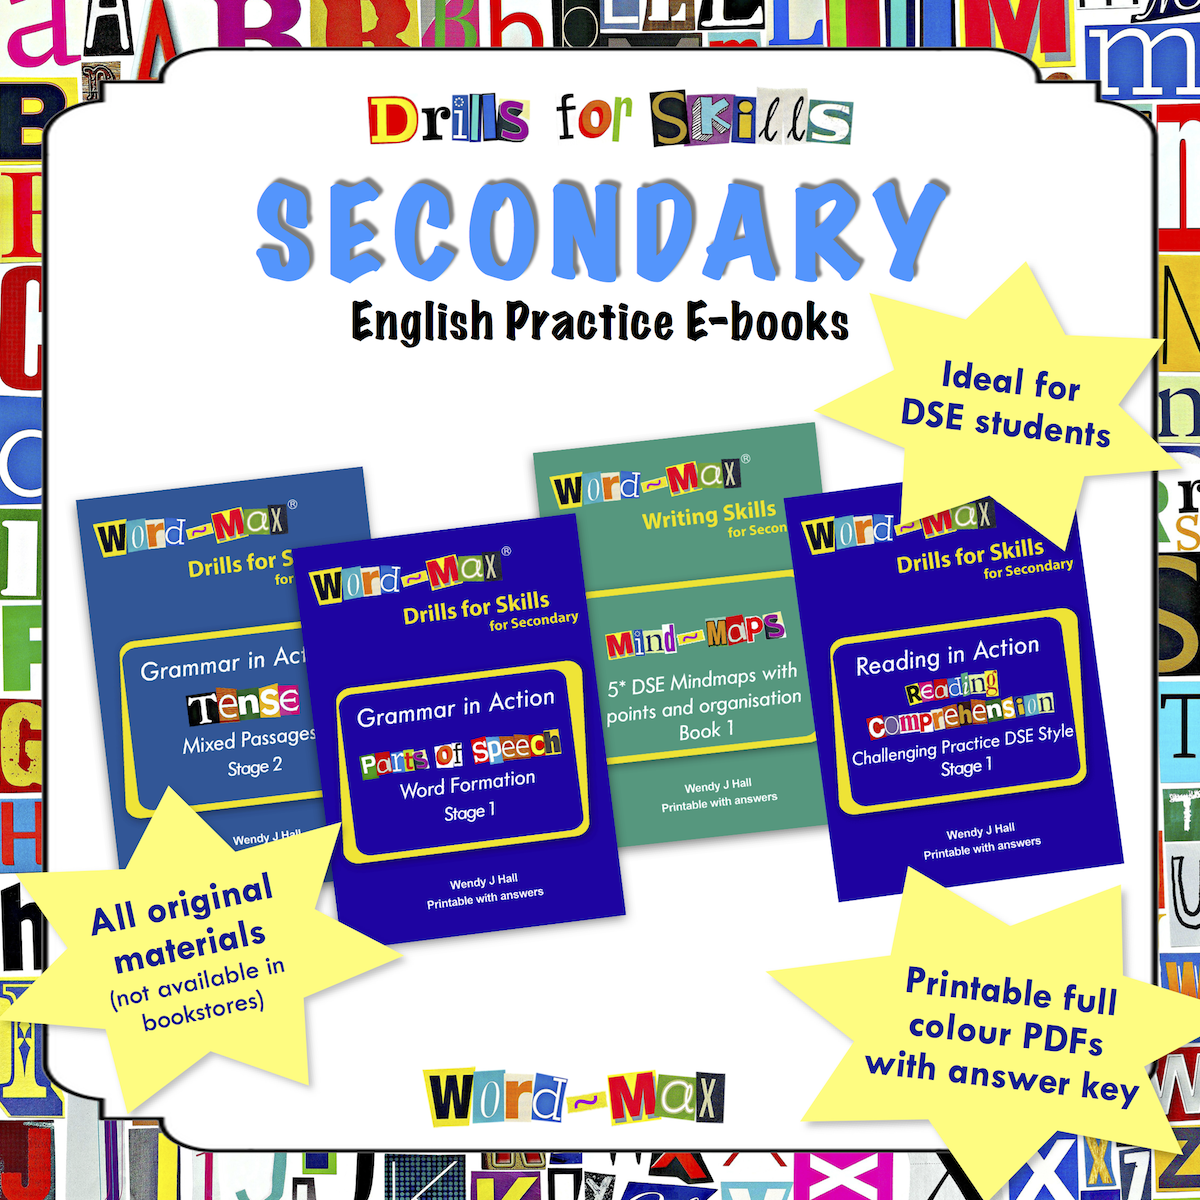 Drills for Skills - Secondary English Practice E-books